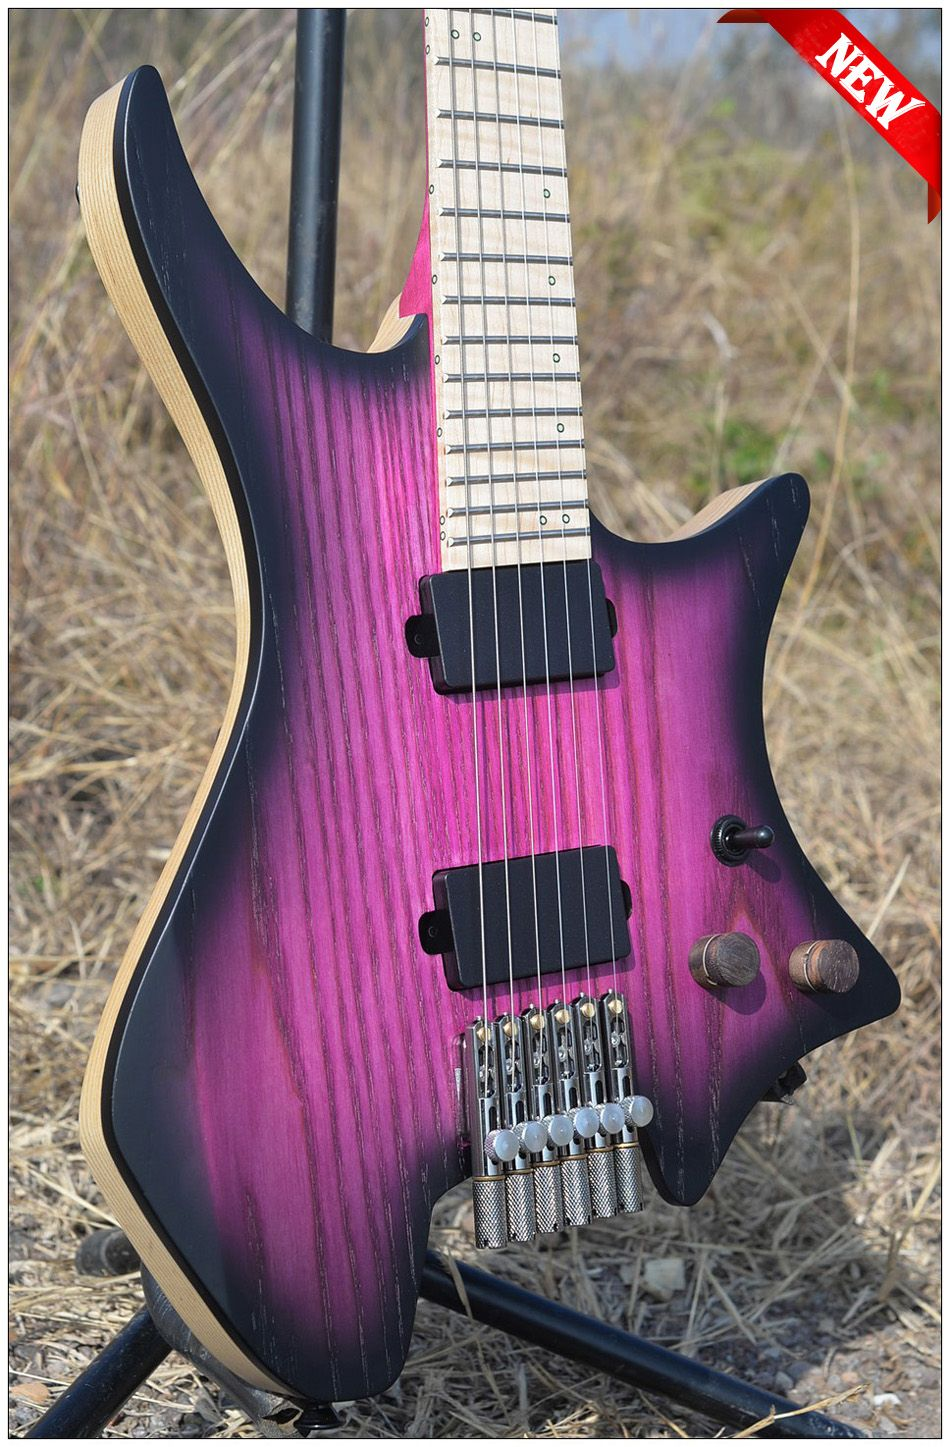 2018 New NK Headless guitar Fanned Fret guitars steinberger style Model Purple burst Color Flame maple Neck Guitar free shipping